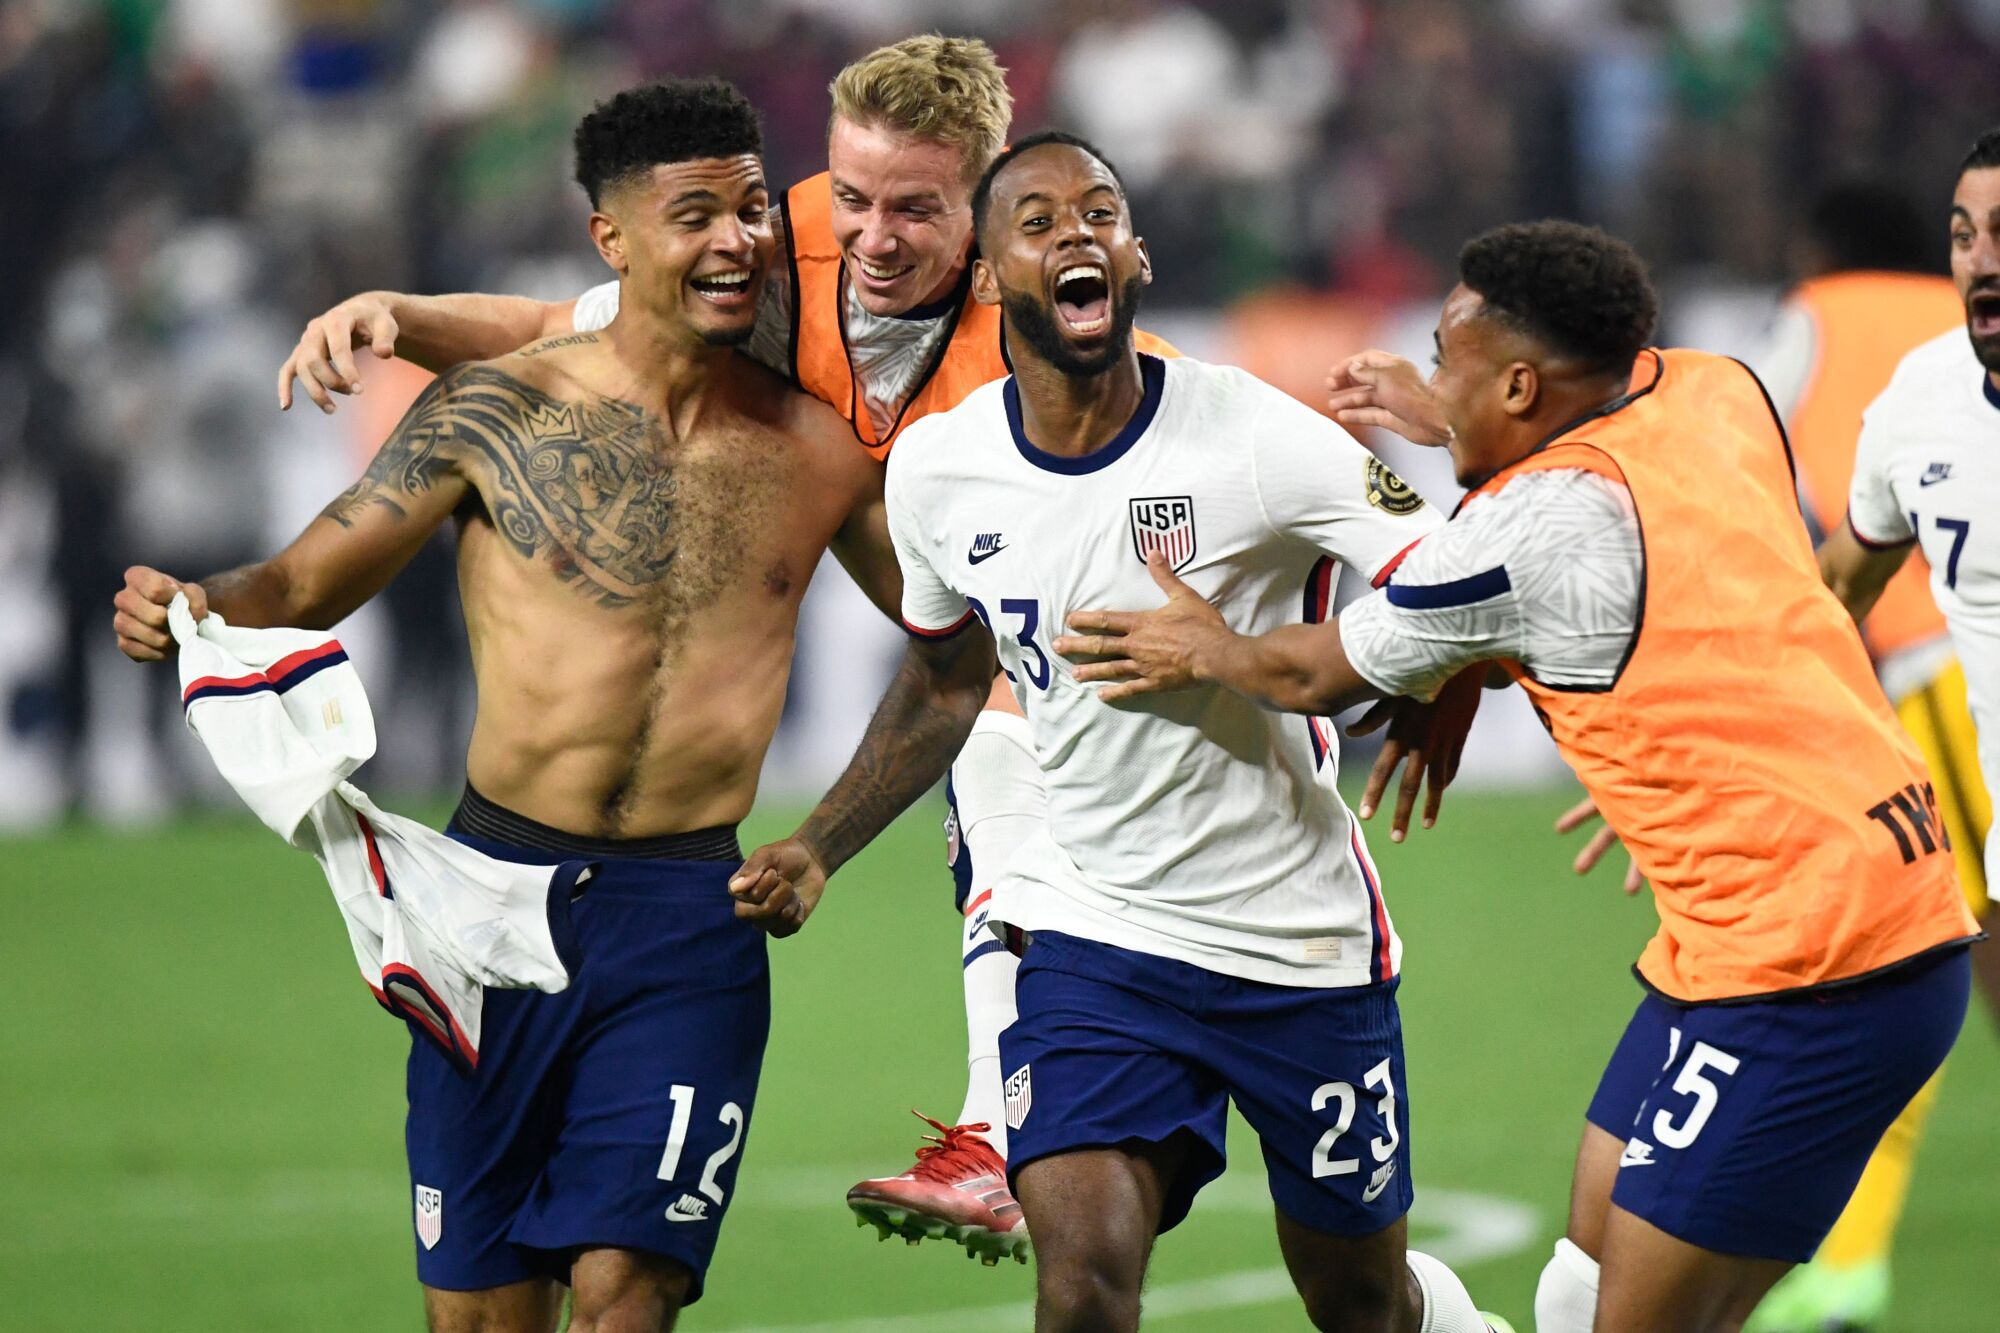 How did the USA vs Mexico CONCACAF Gold Cup 2021 Final go?